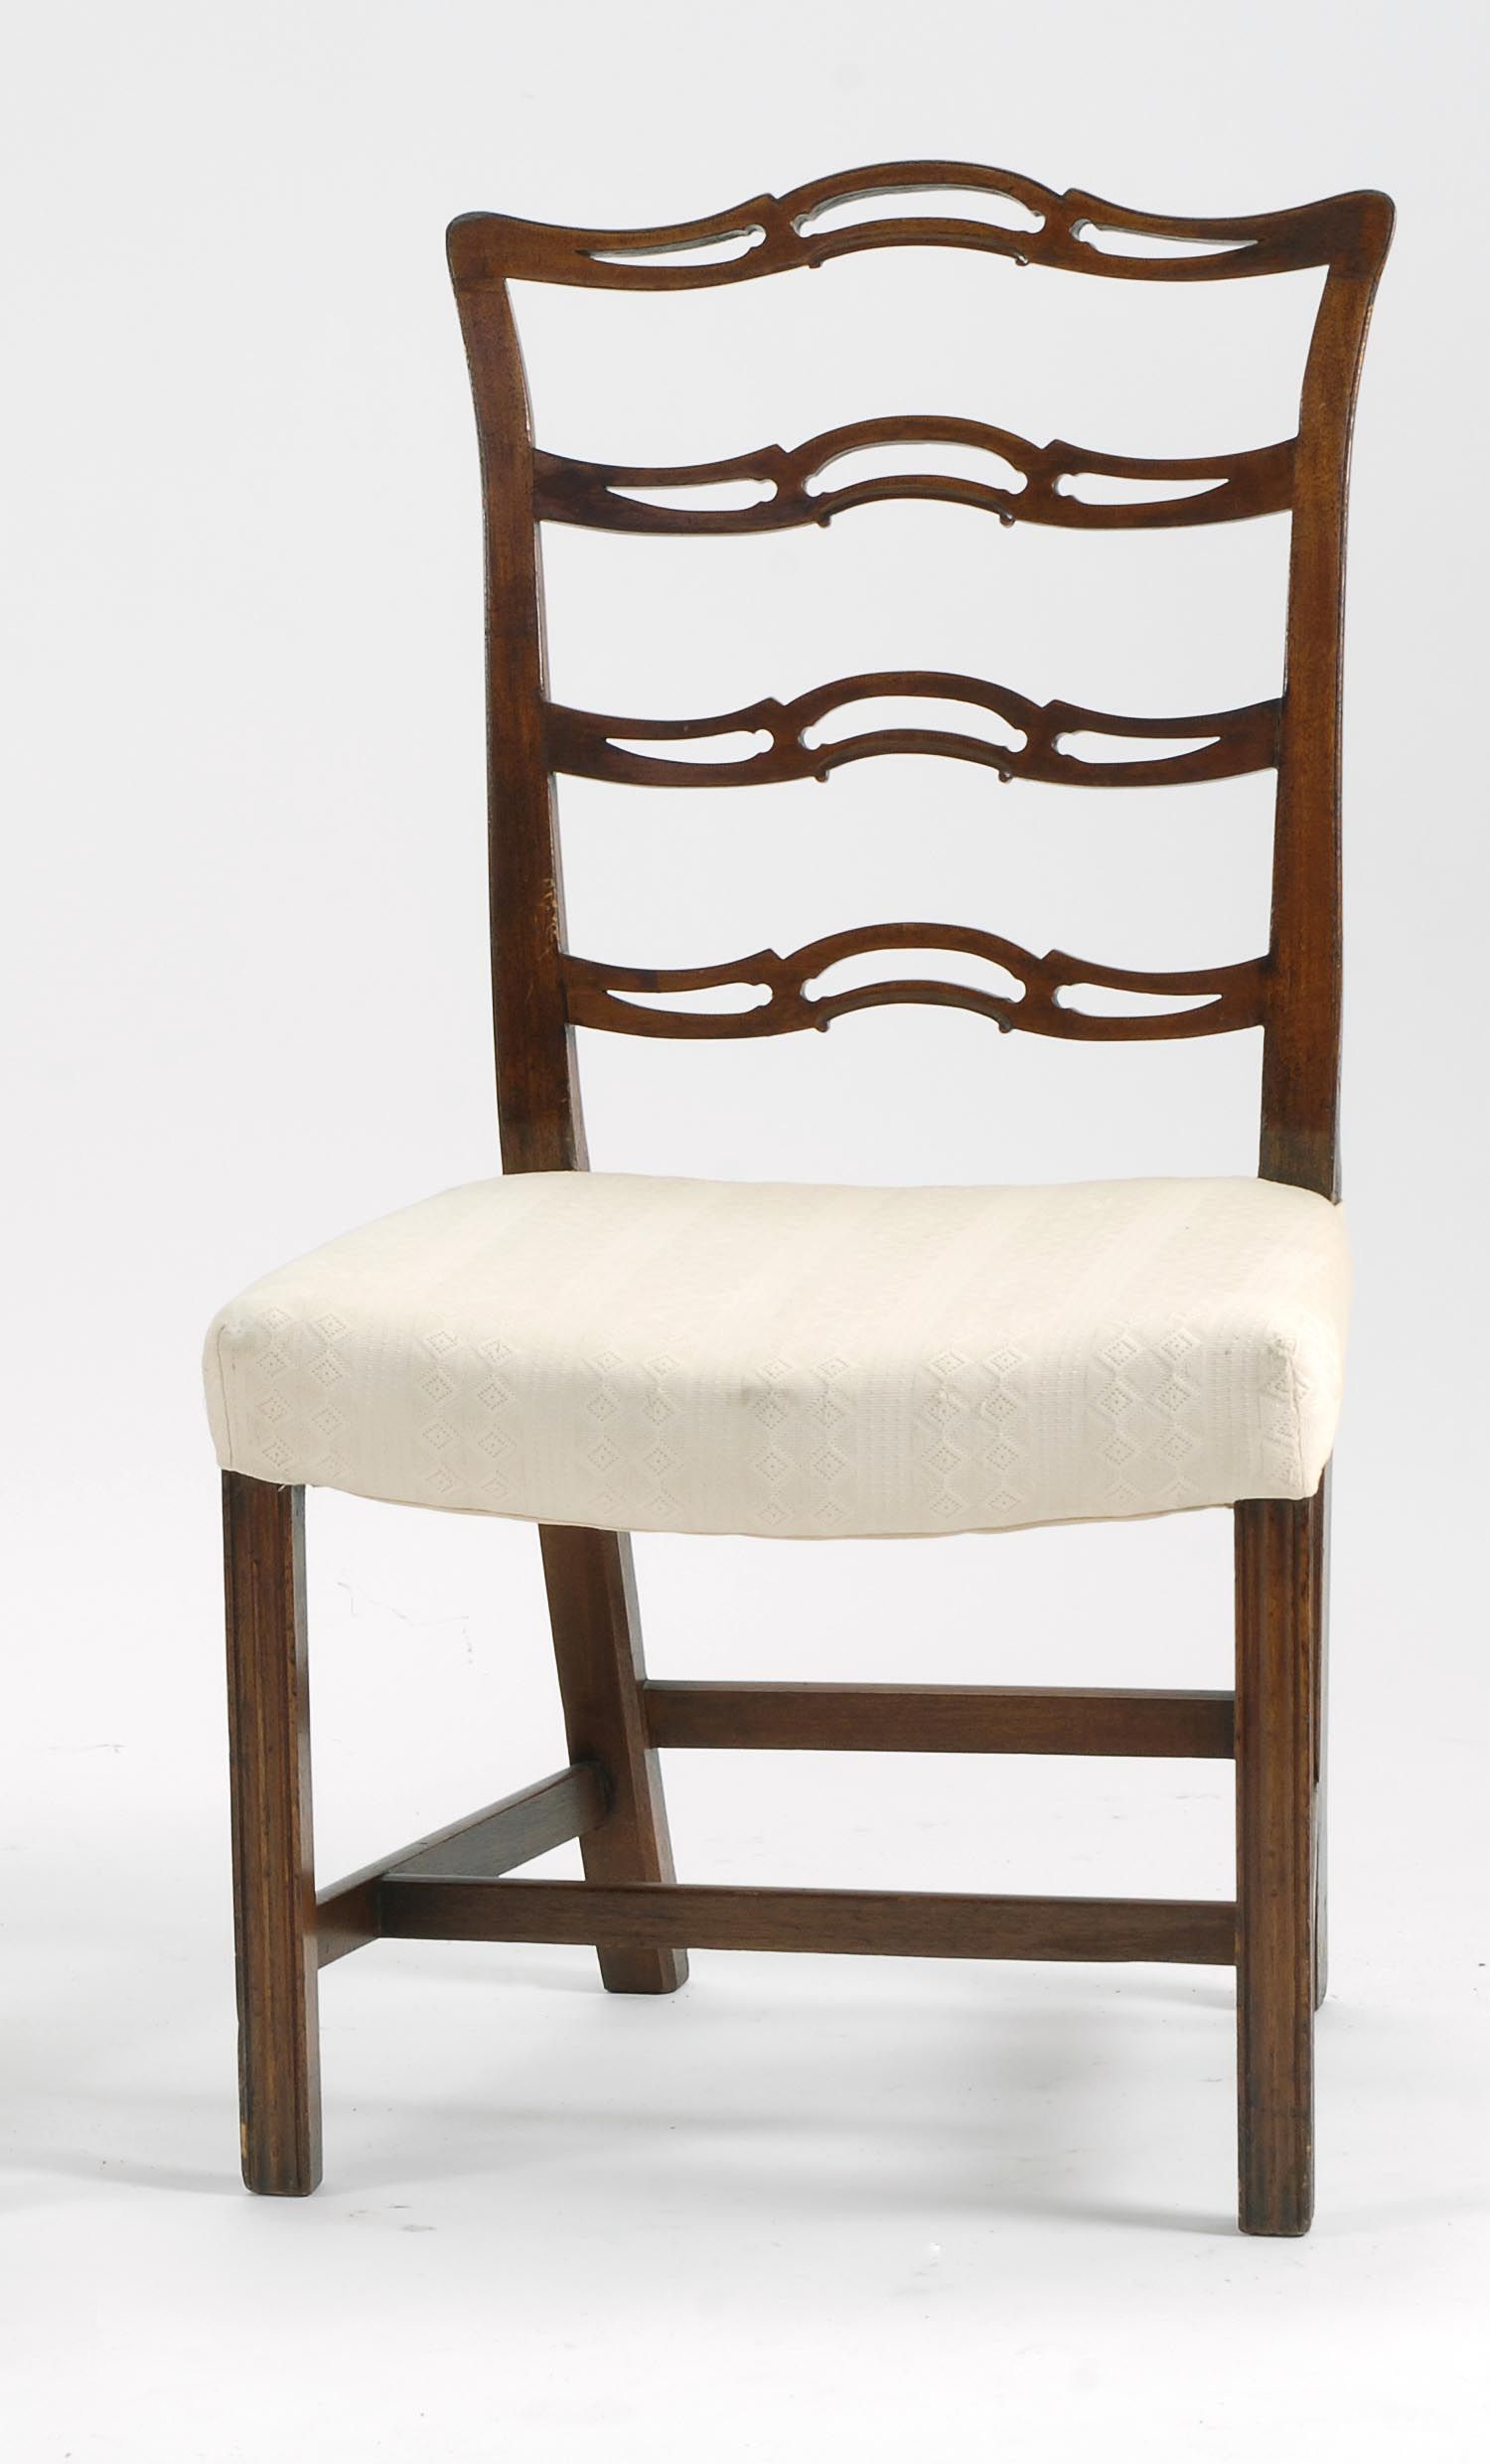 chippendale rocking chair gothic chairs 18th century 2013 spring americana